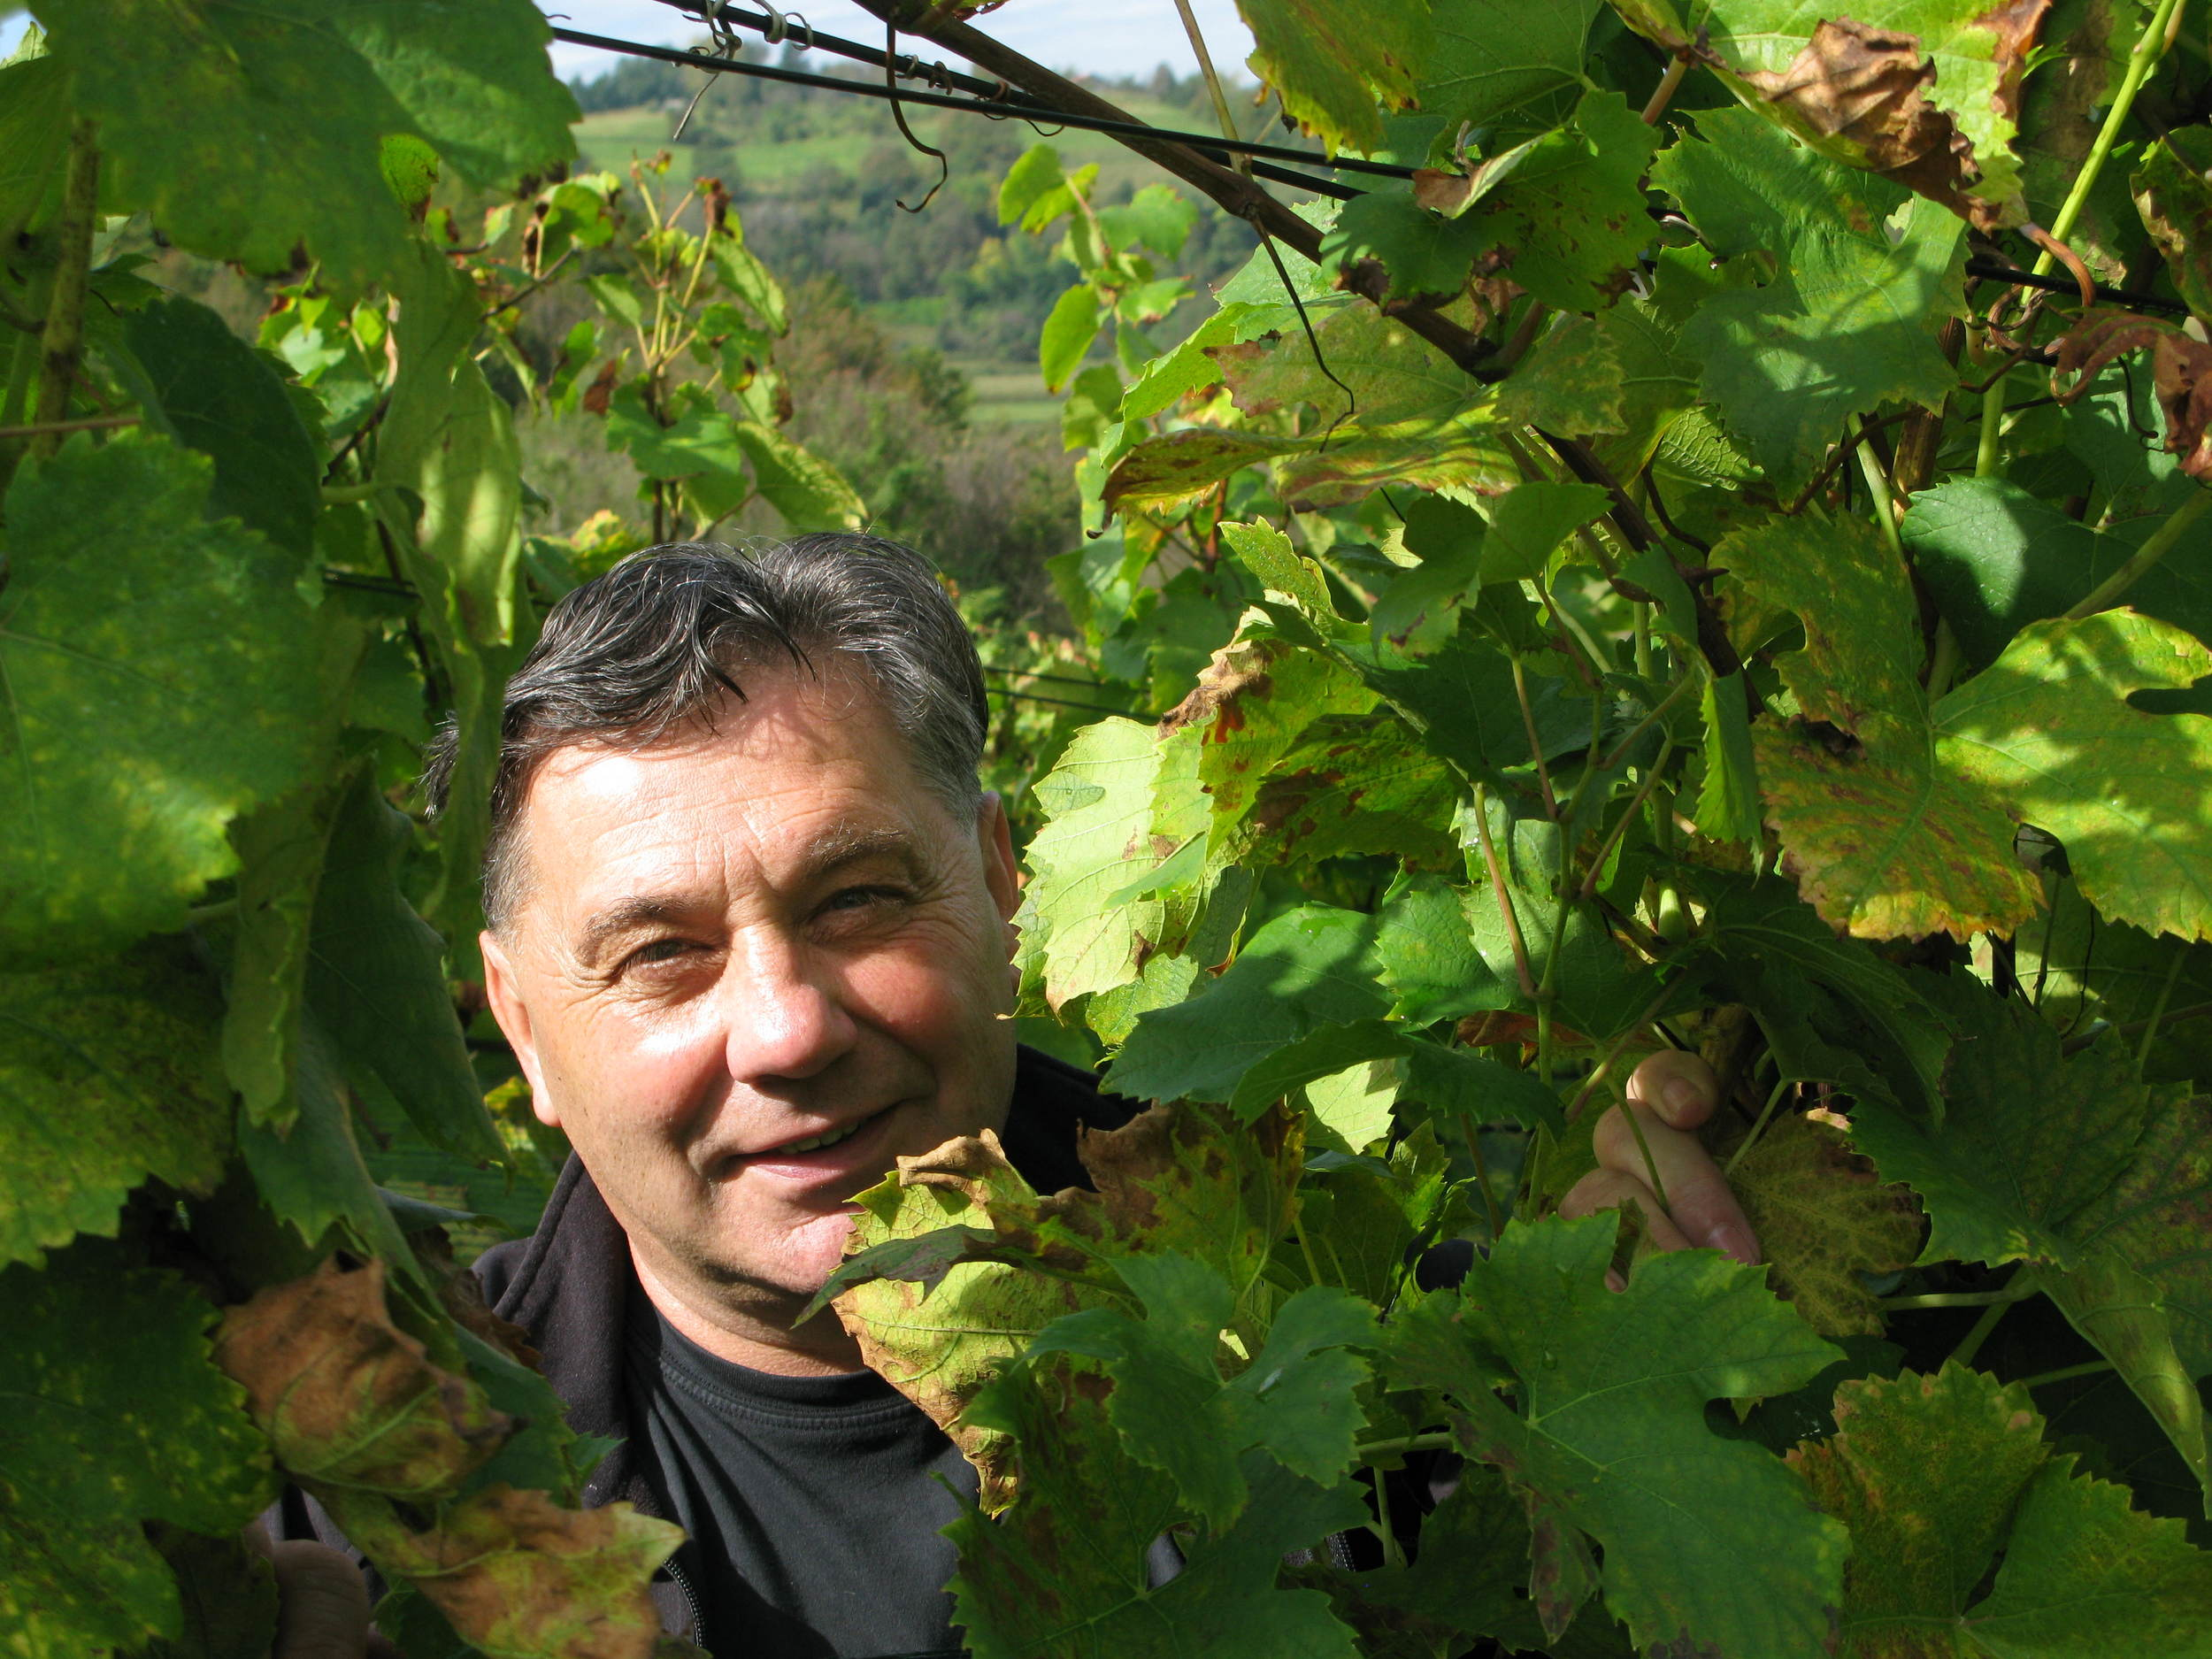 Boris Drenški is a part-timer with no formal training in winemaking. For him, it's all about moments of inspiration